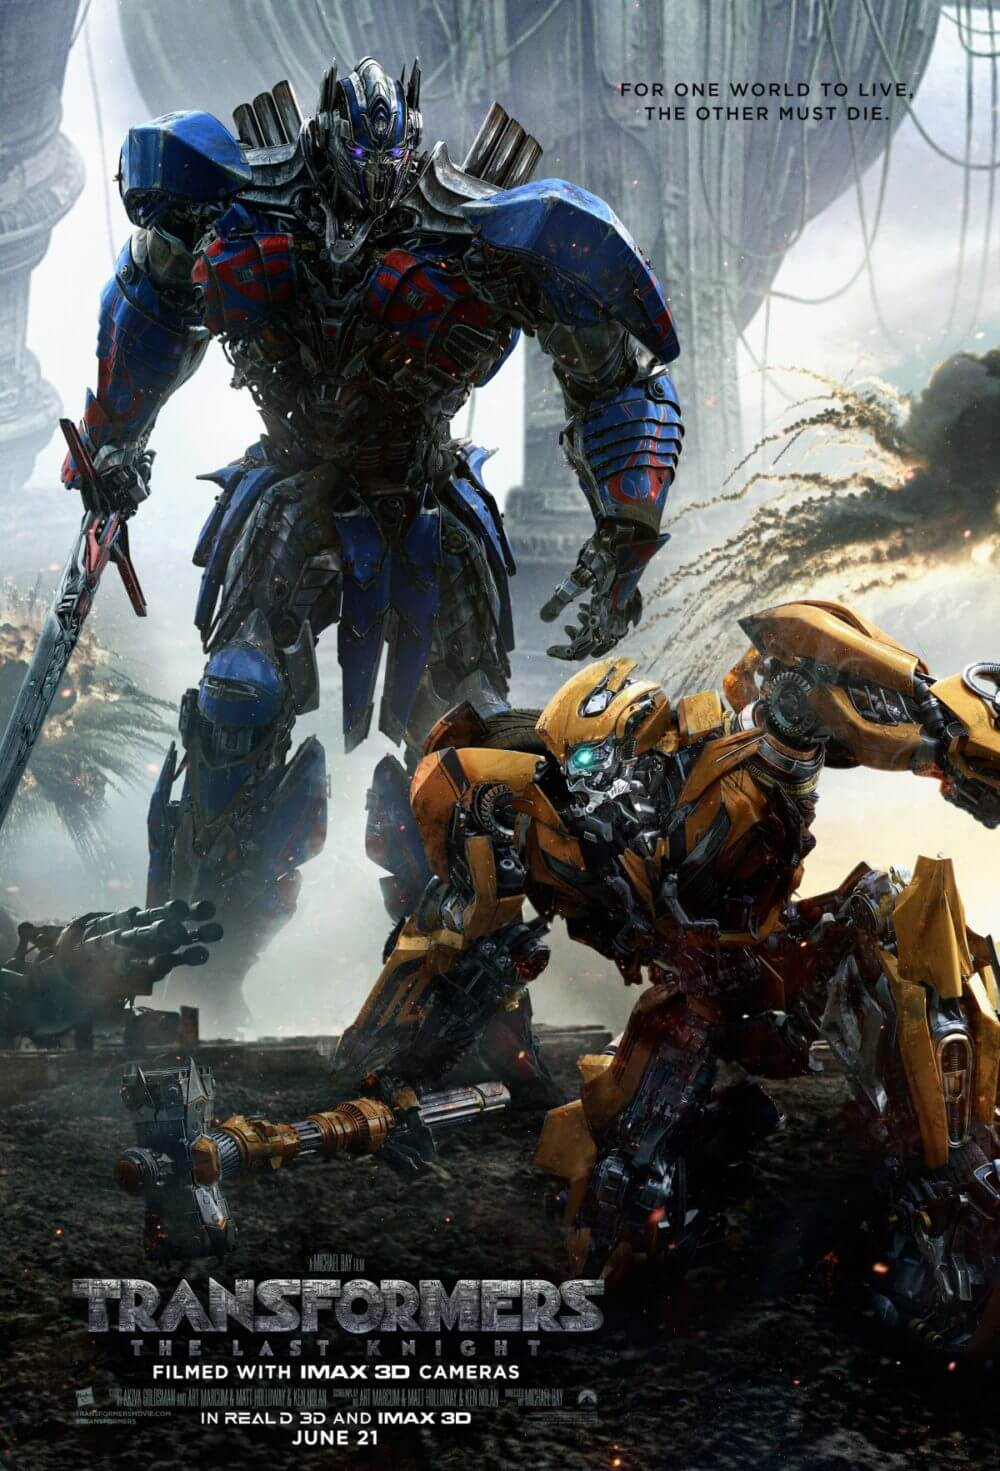 Transformers - the Last Knight Poster